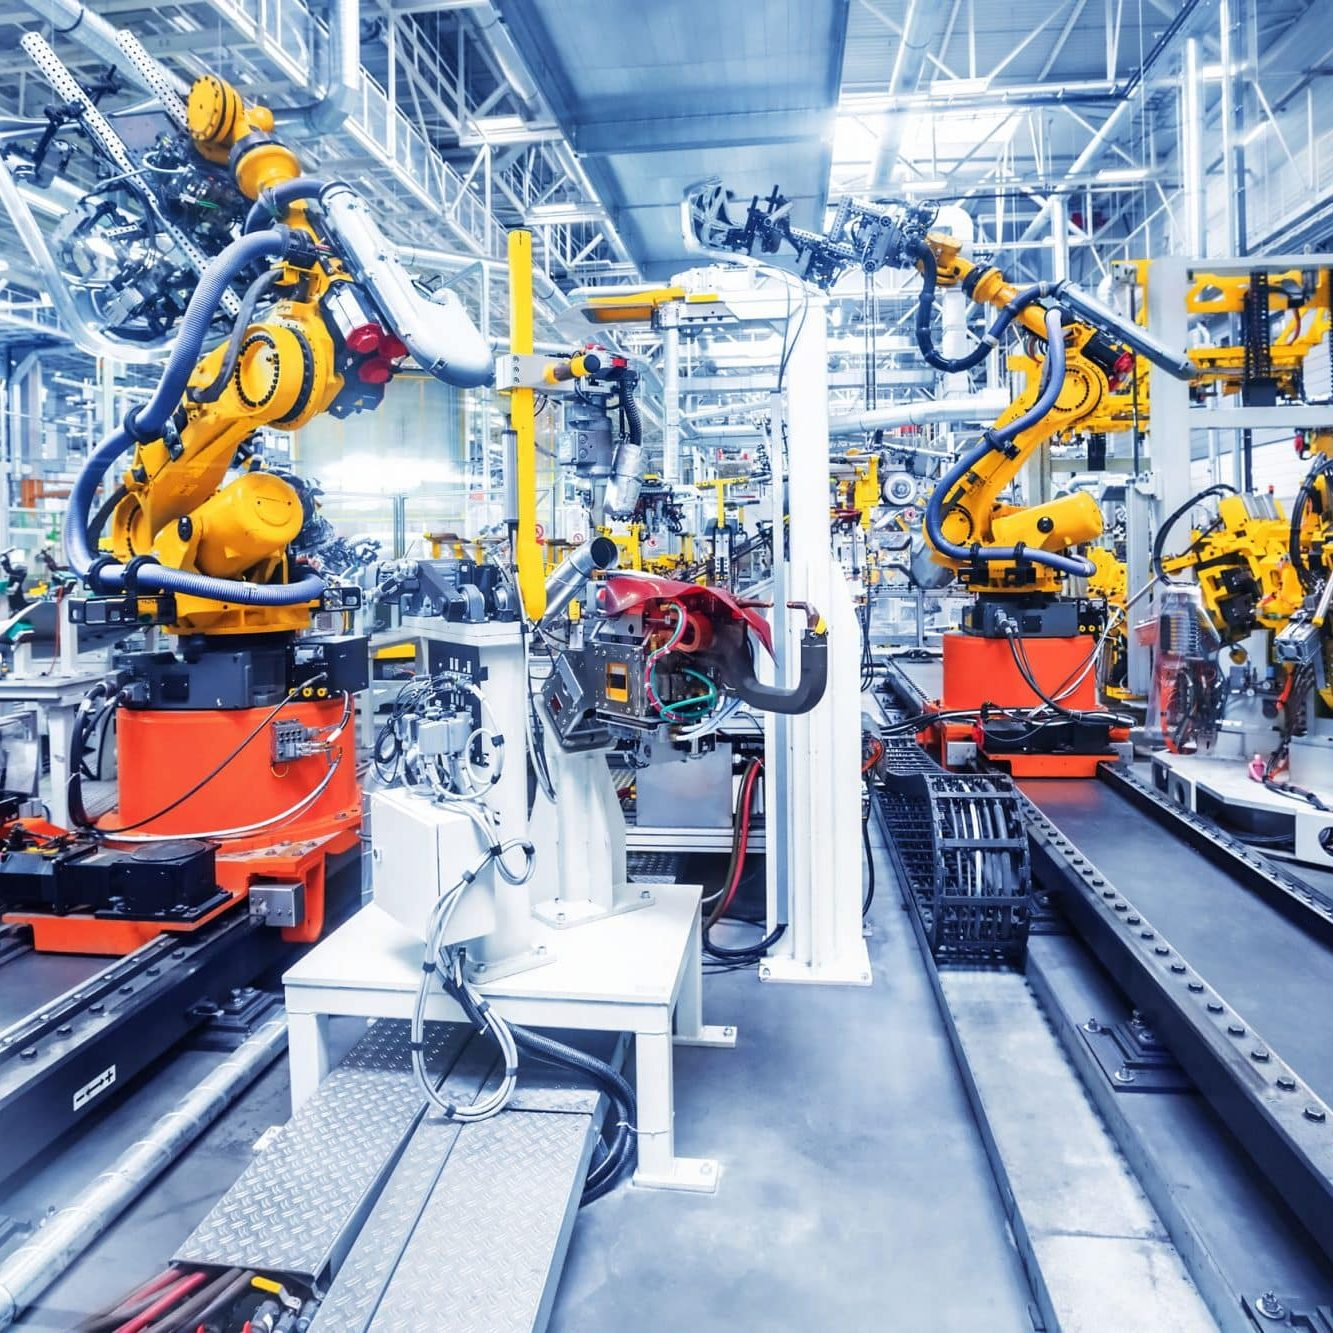 Pictured is an auto plant factory with robotic arms that could potentially cause a defect